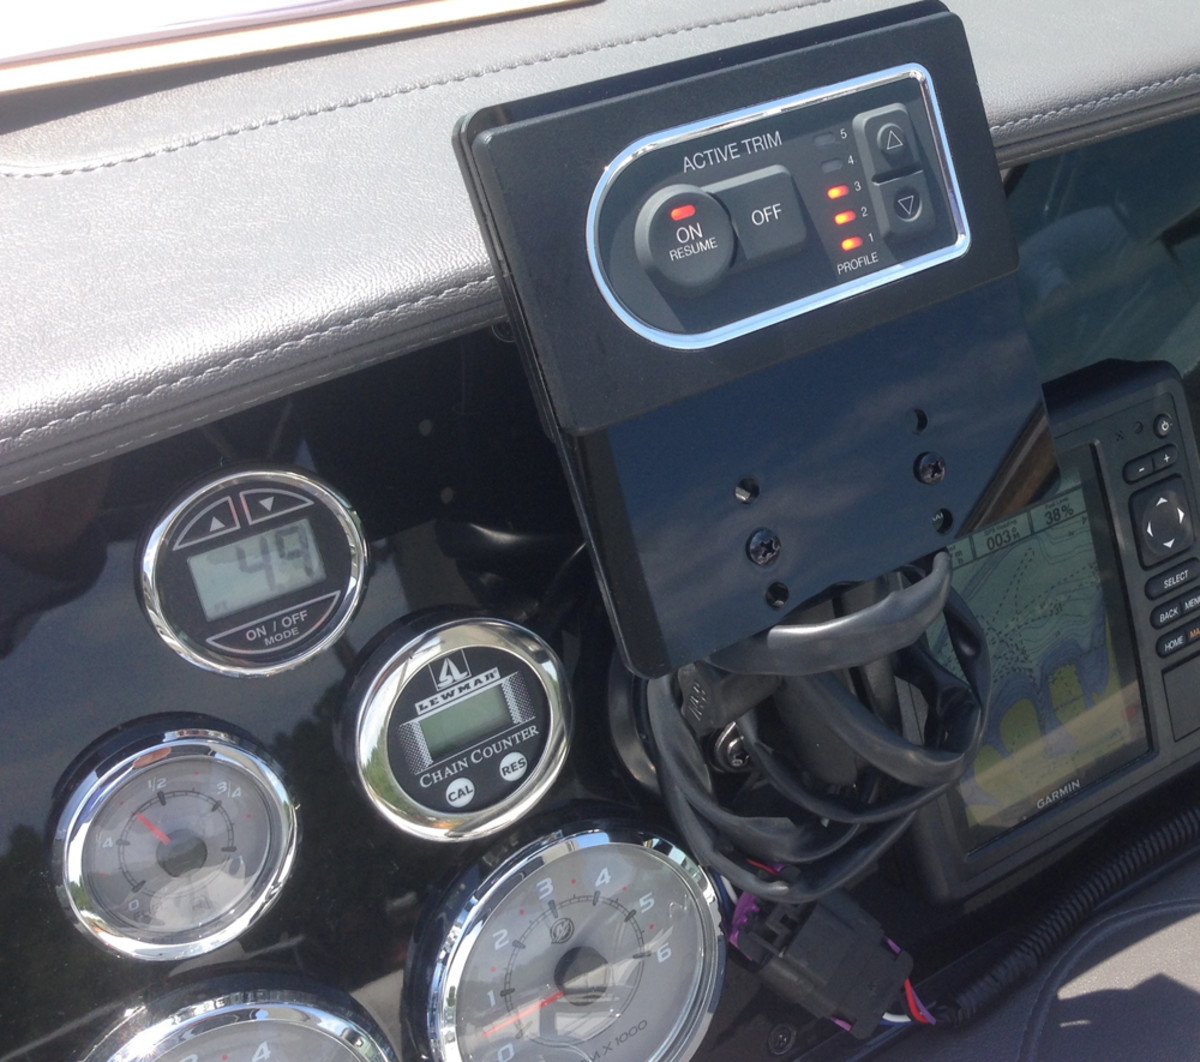 Mercury Marine's new Active Trim Control system will hit the market in February.